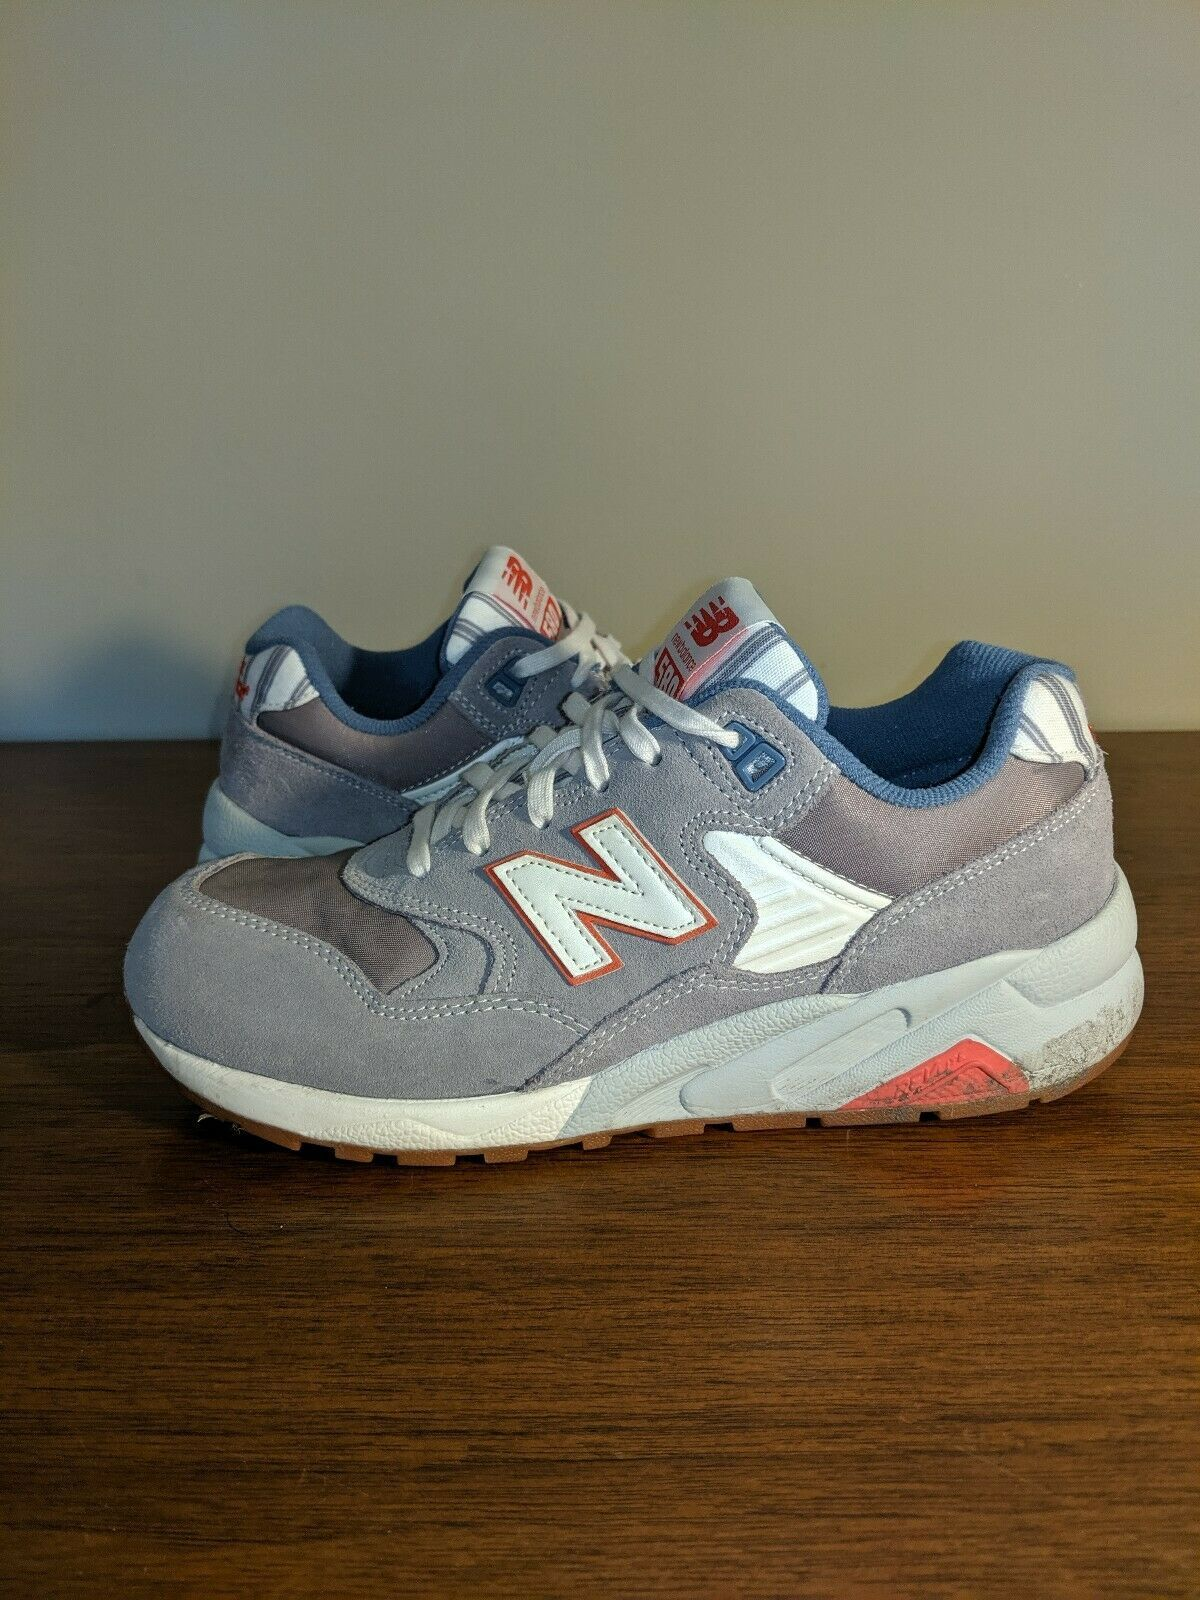 New Balance 580 Classic Beach Grey White Red Women's Sneakers size 7.5 WRT508RE